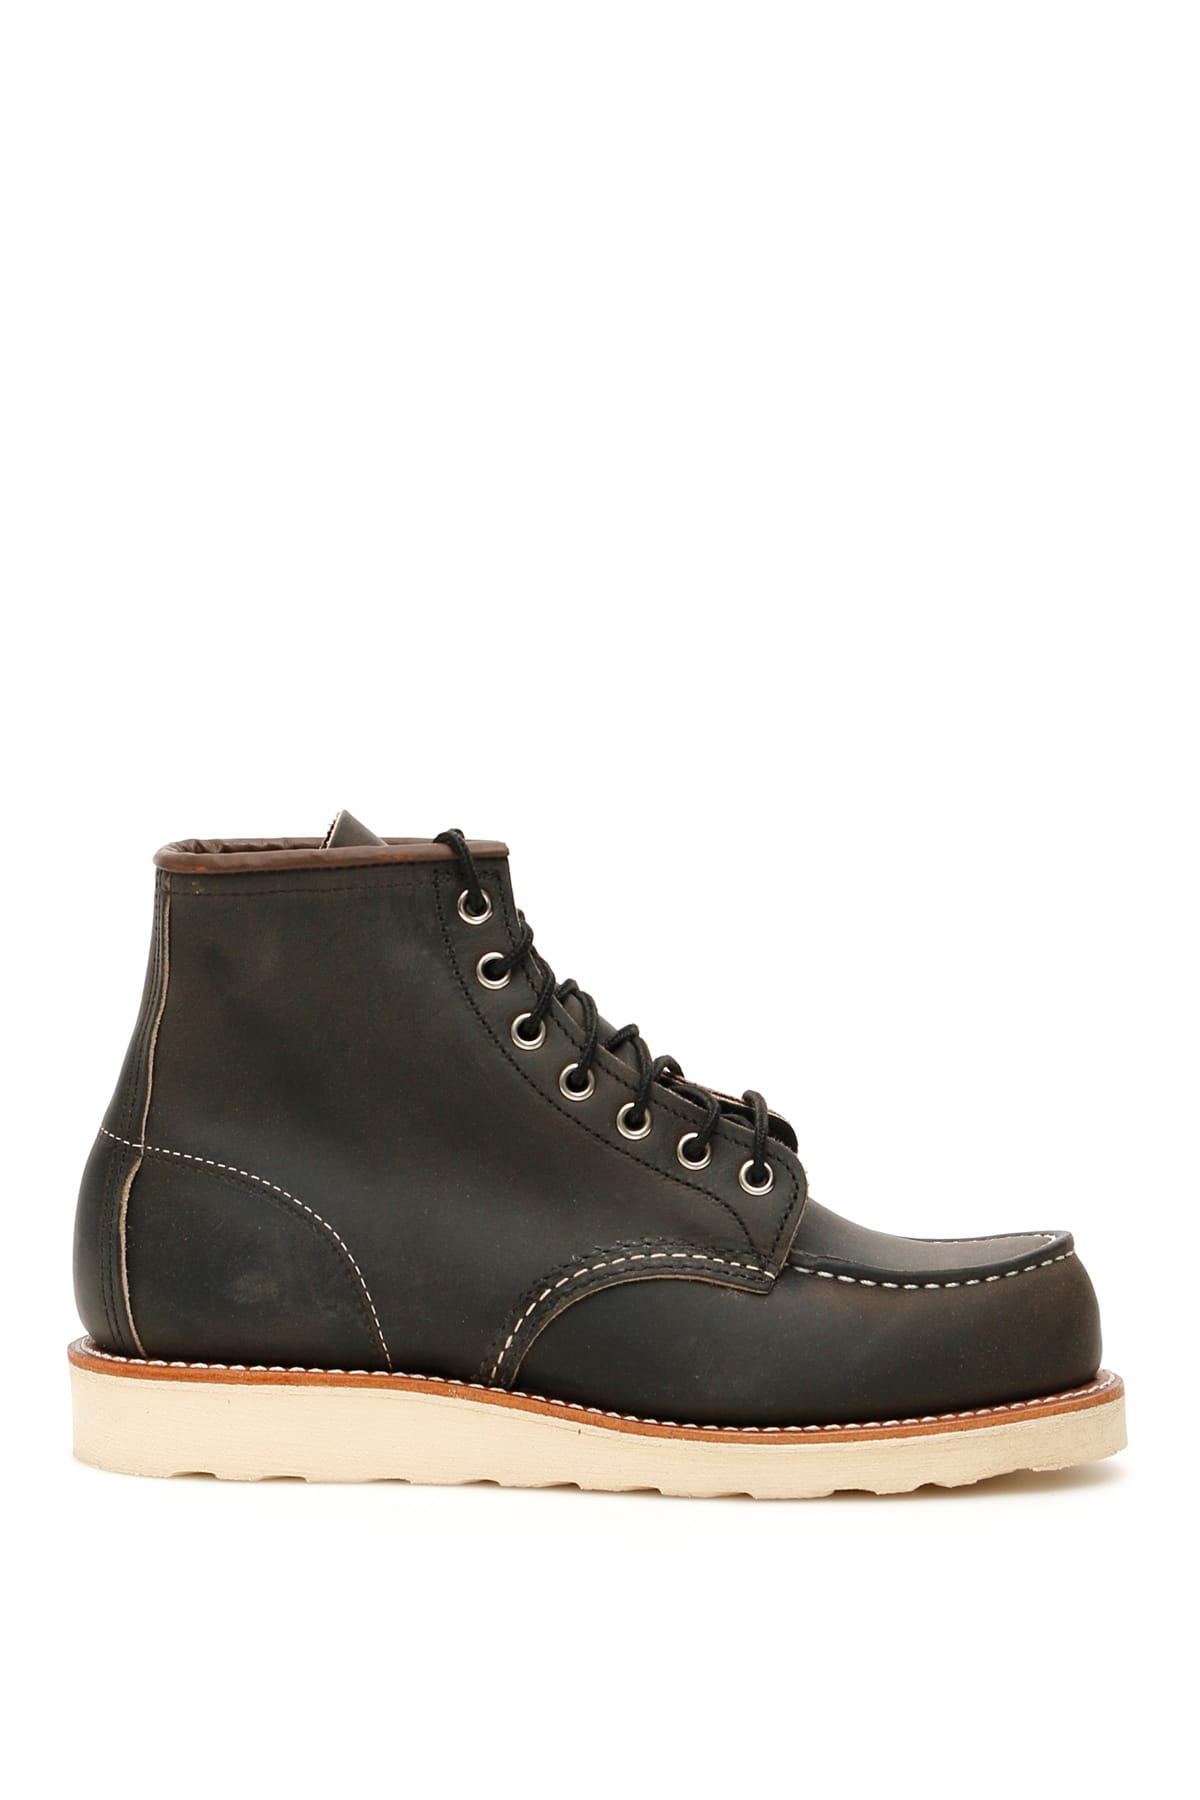 Red Wing Moc Toe 8890 Boots